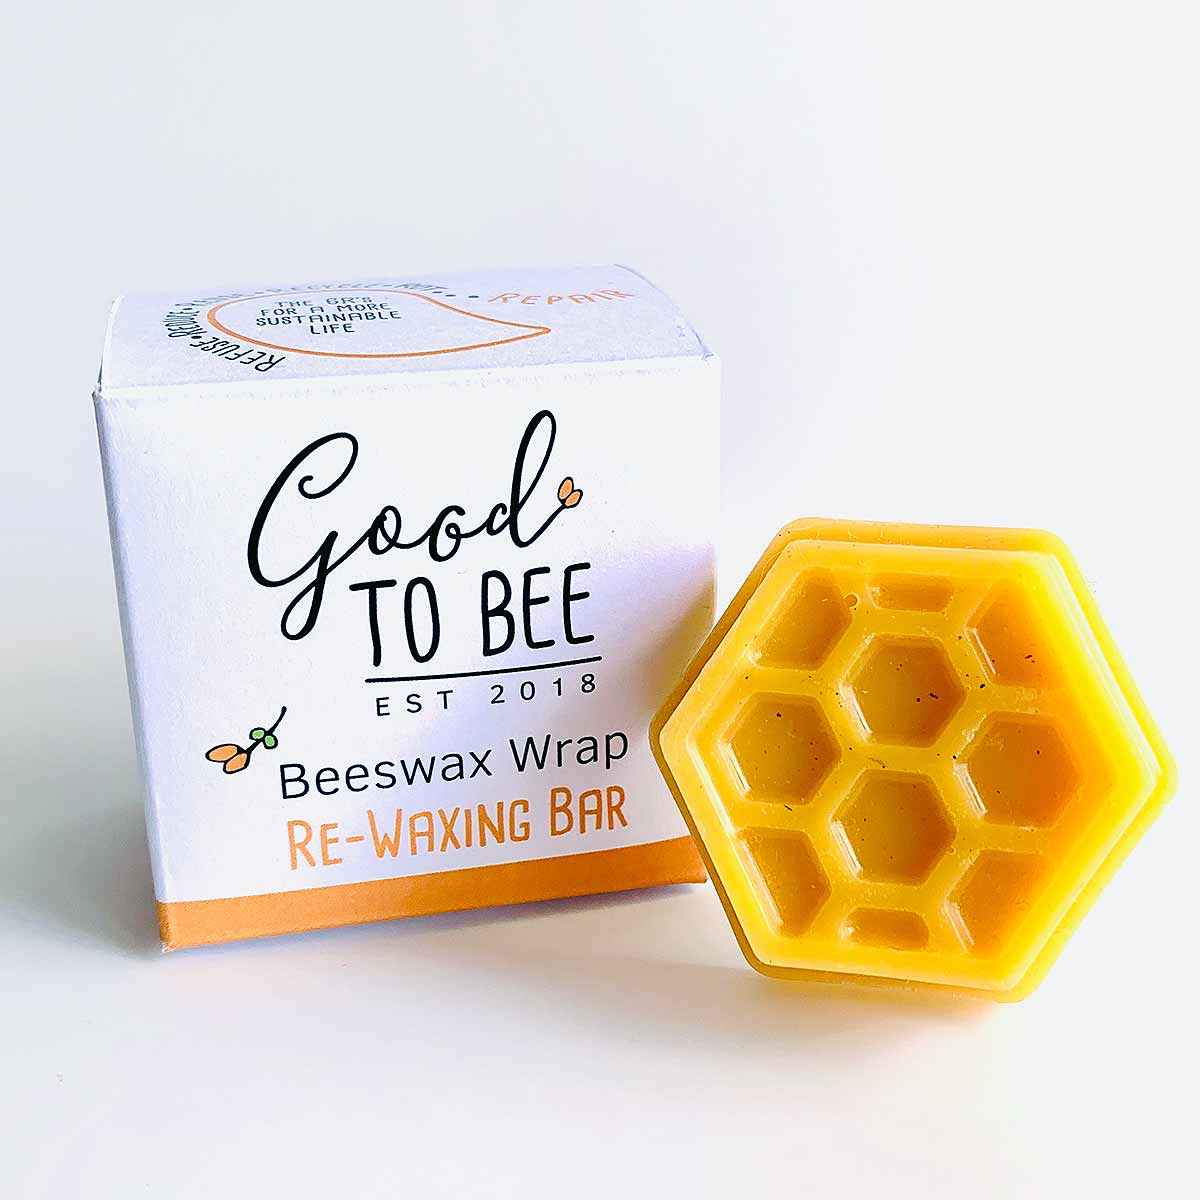 beeswax bar and box on white background